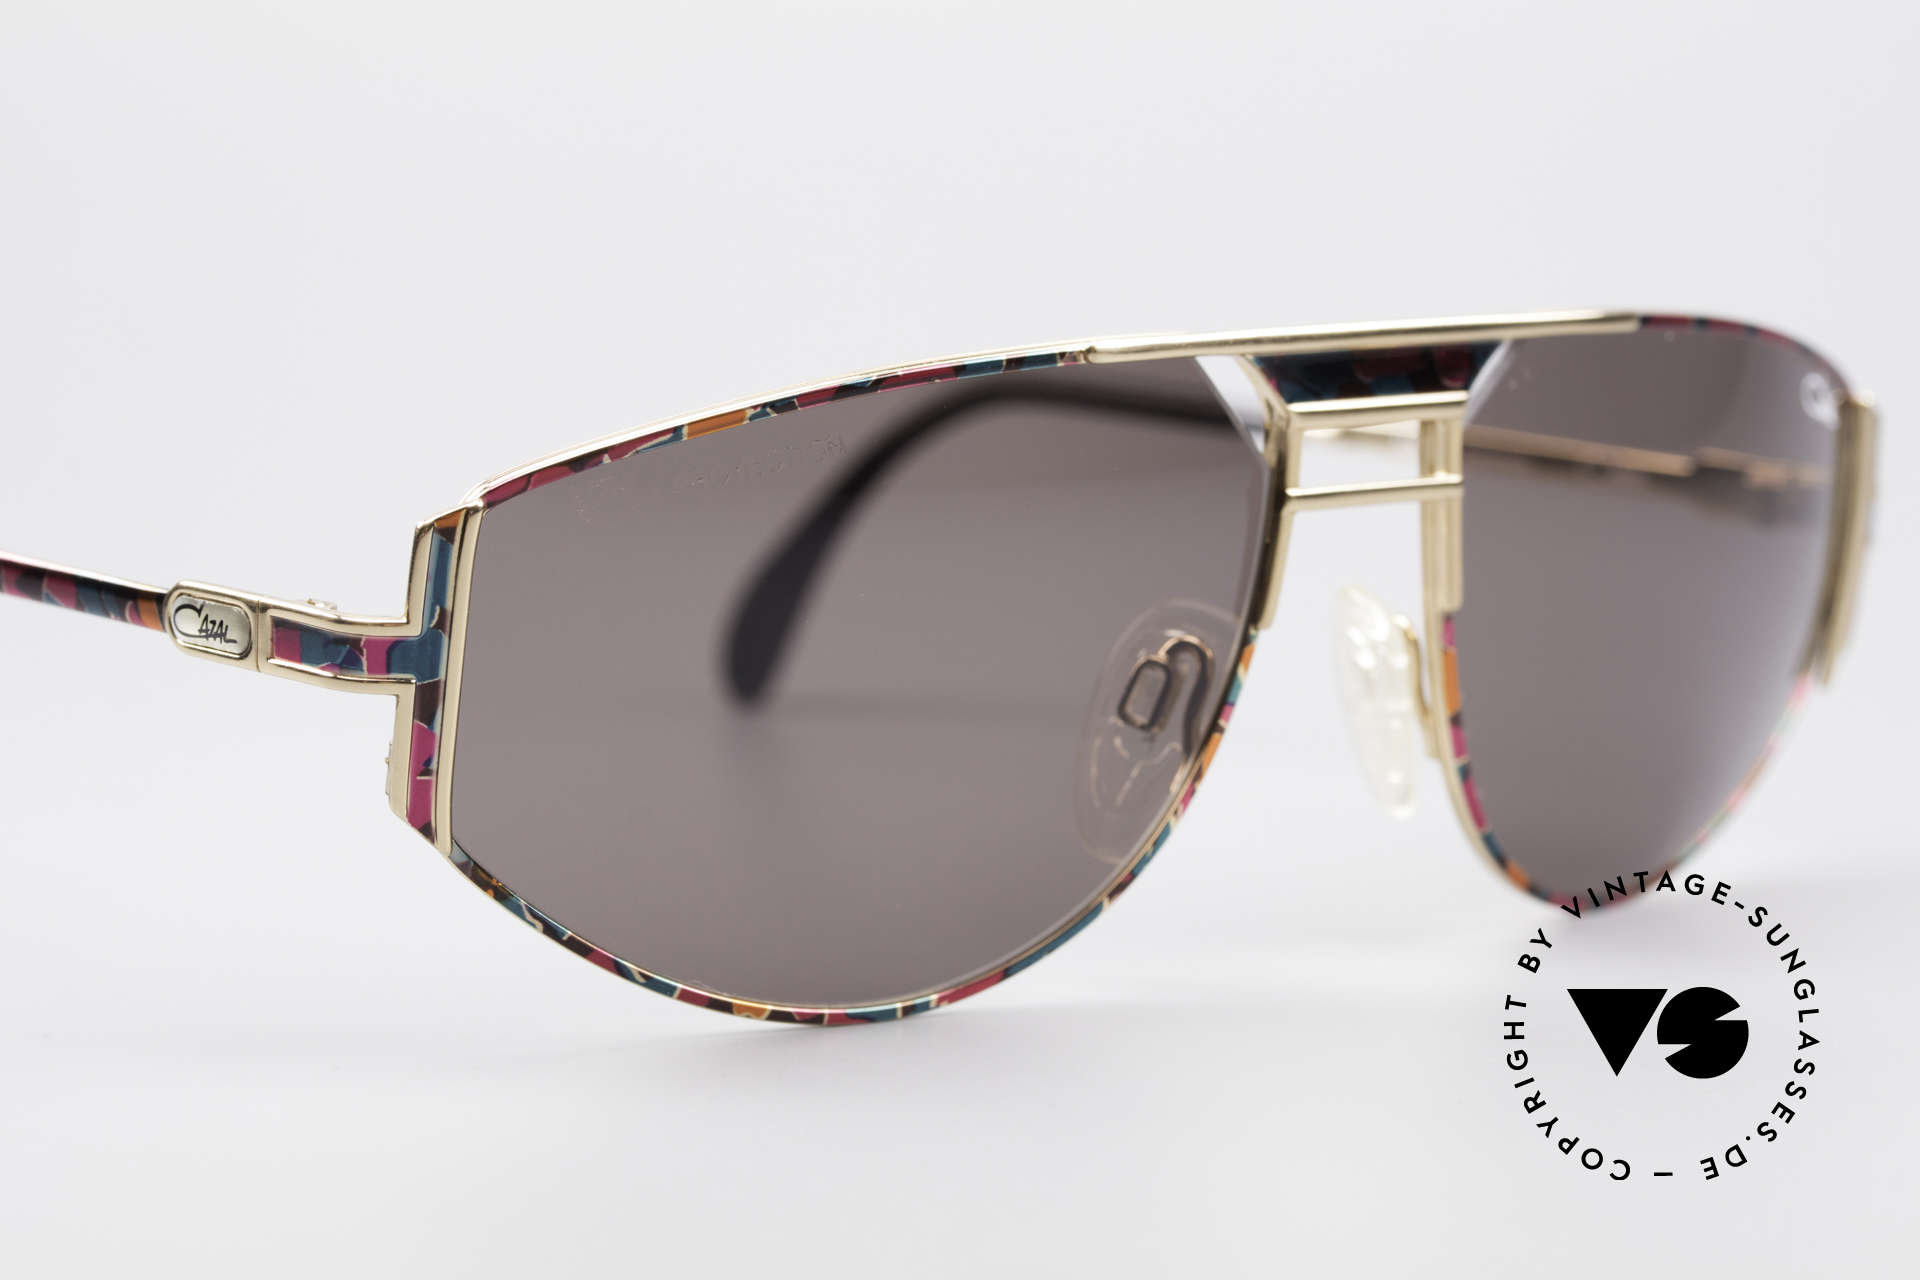 Cazal 964 True 90's No Retro Sunglasses, perfect frame for an individual look; cult sunglasses!, Made for Men and Women